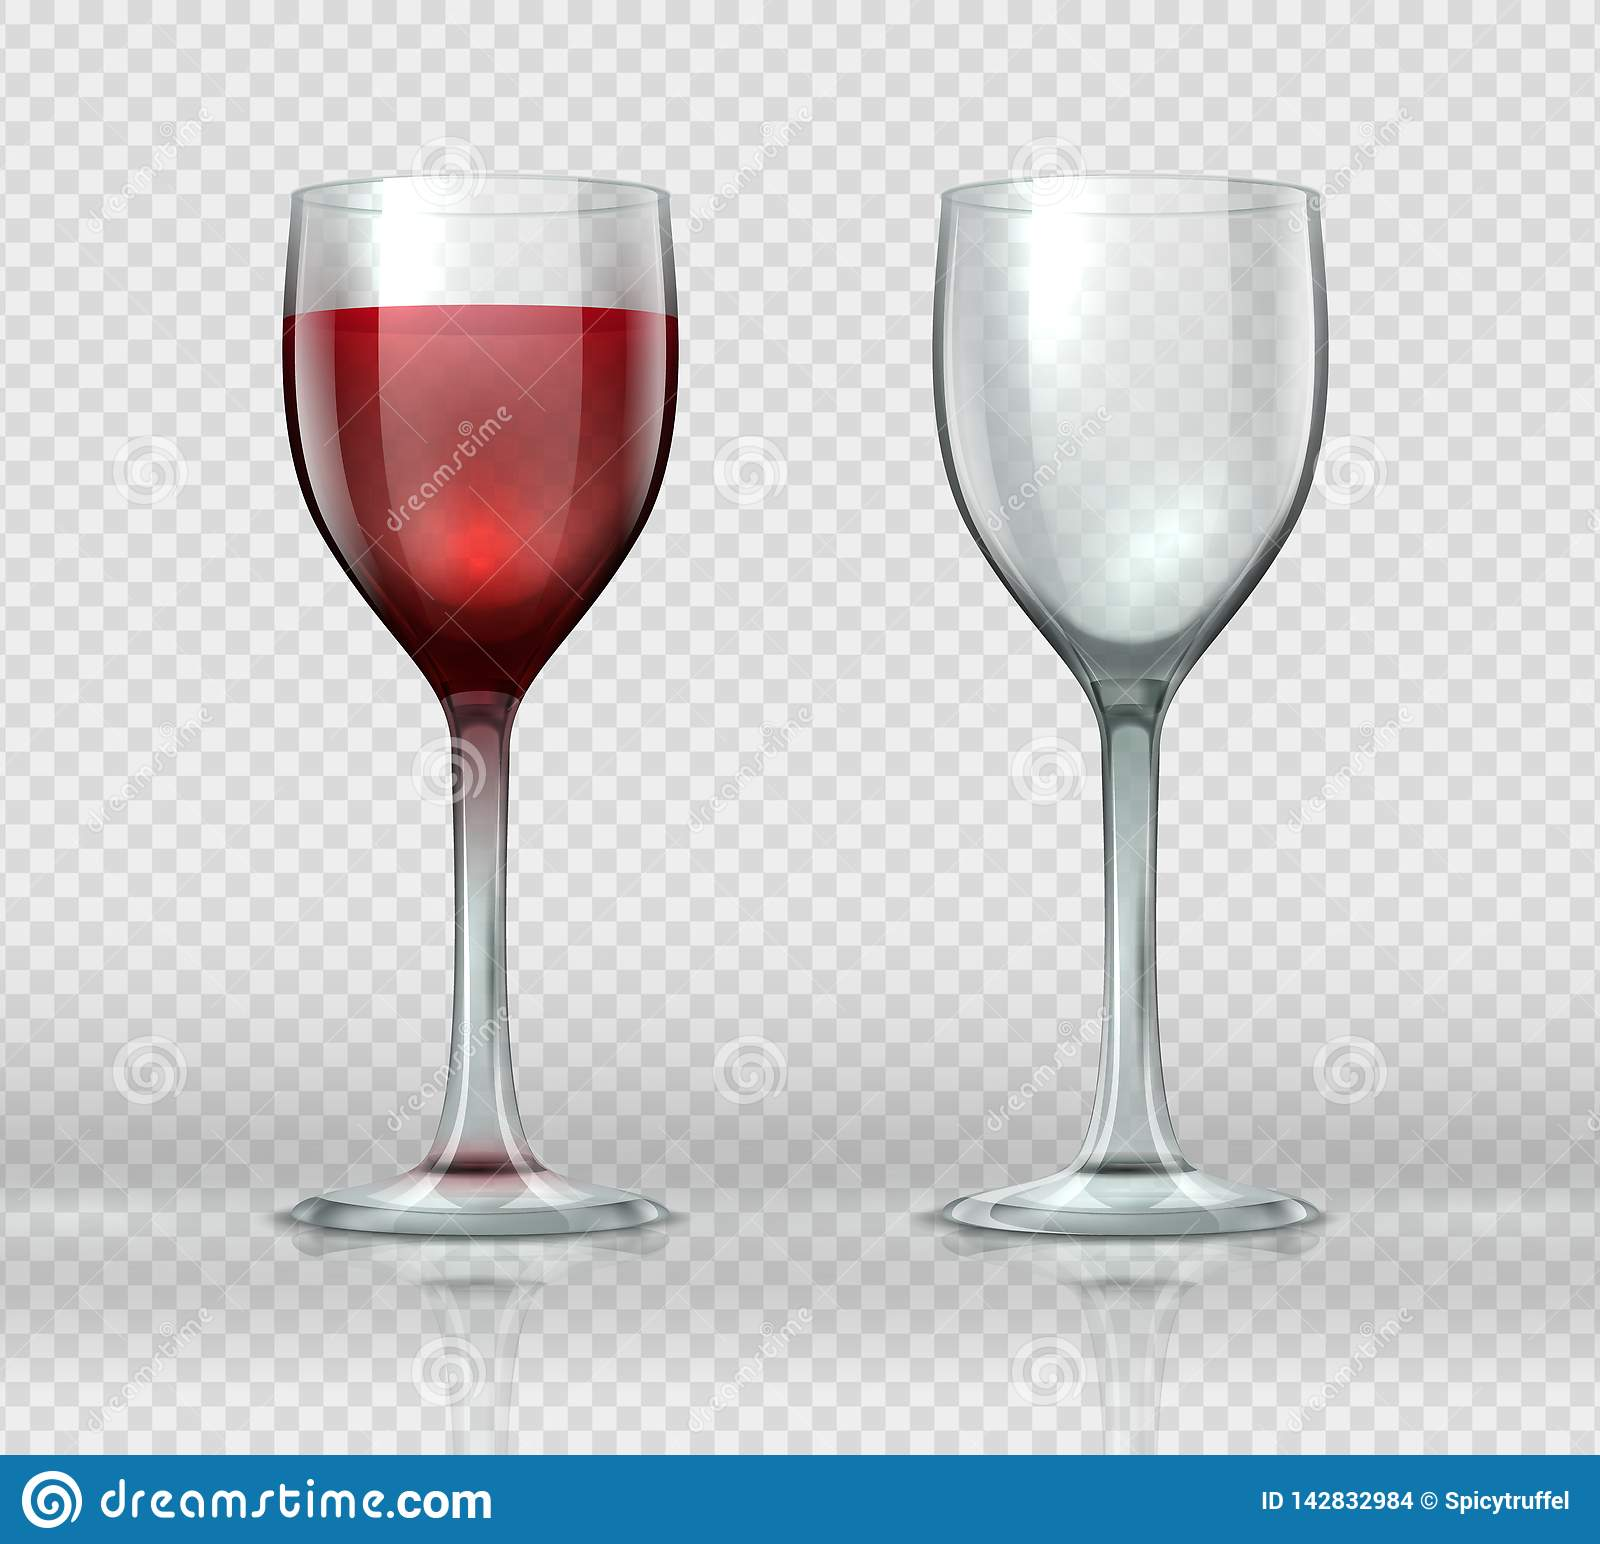 Realistic wine glasses. Transparent isolated wineglass with red wine, 3D empty glass cup for cocktails. Vector winery